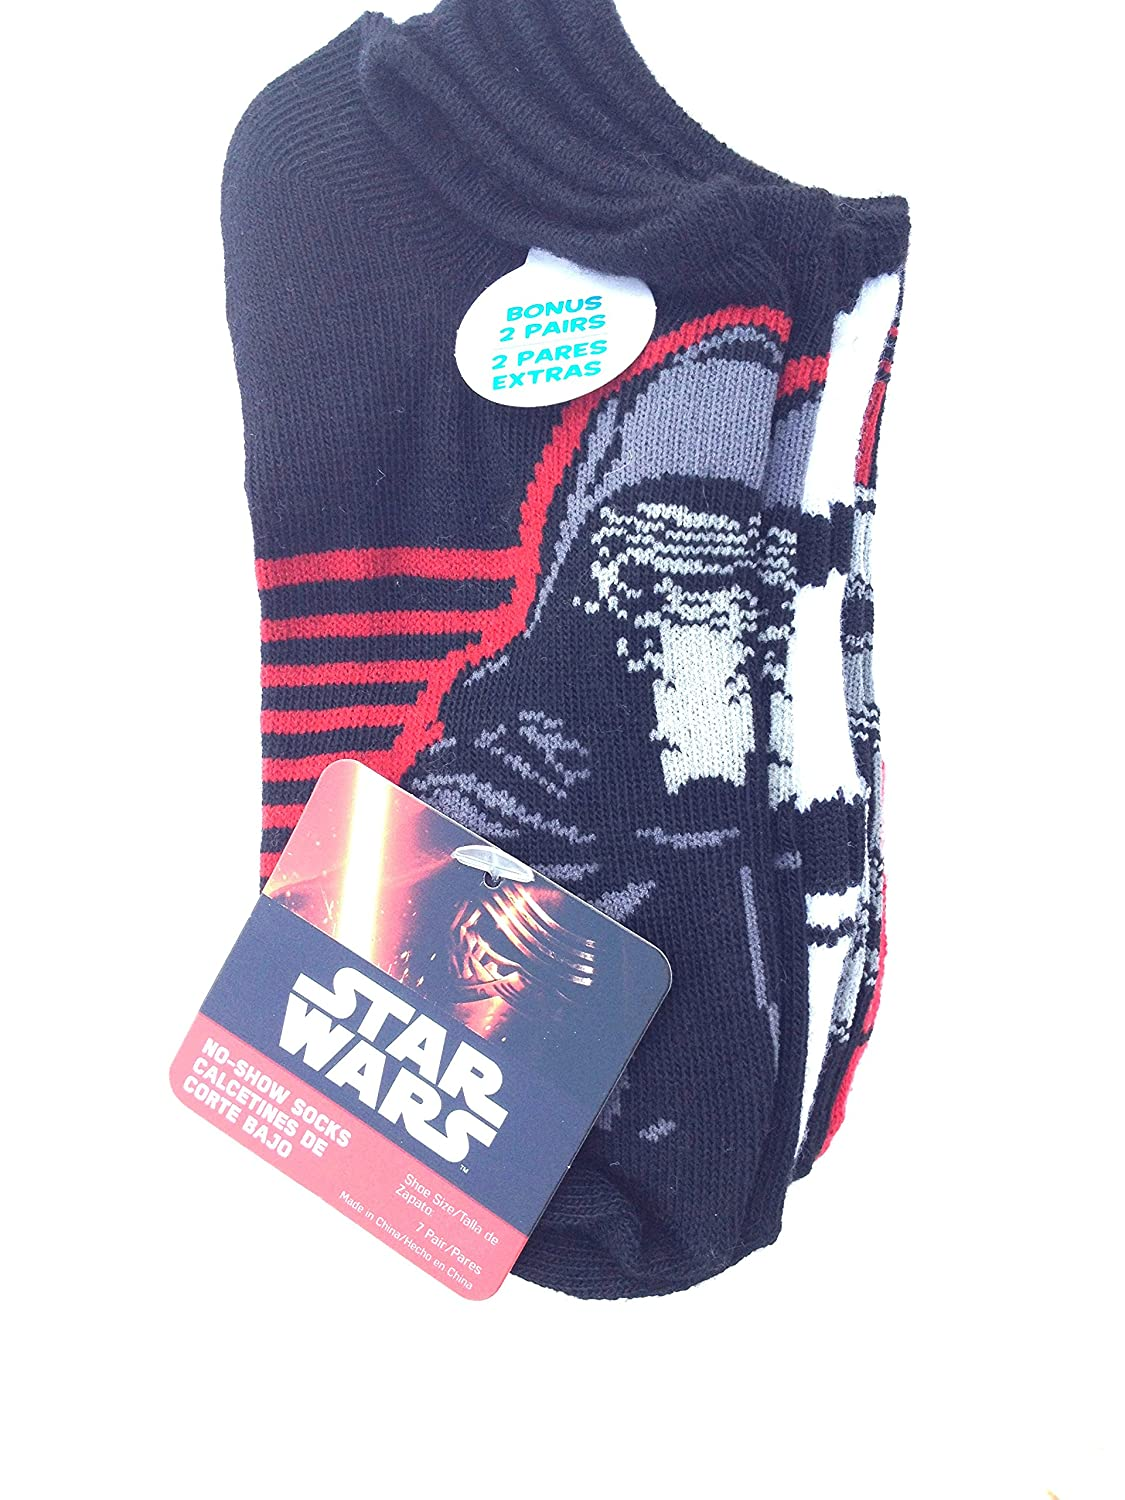 Amazon.com: Boys Star Wars Episode 7 No Show Socks 7 Pairs Medium 7.5-3.5: Clothing